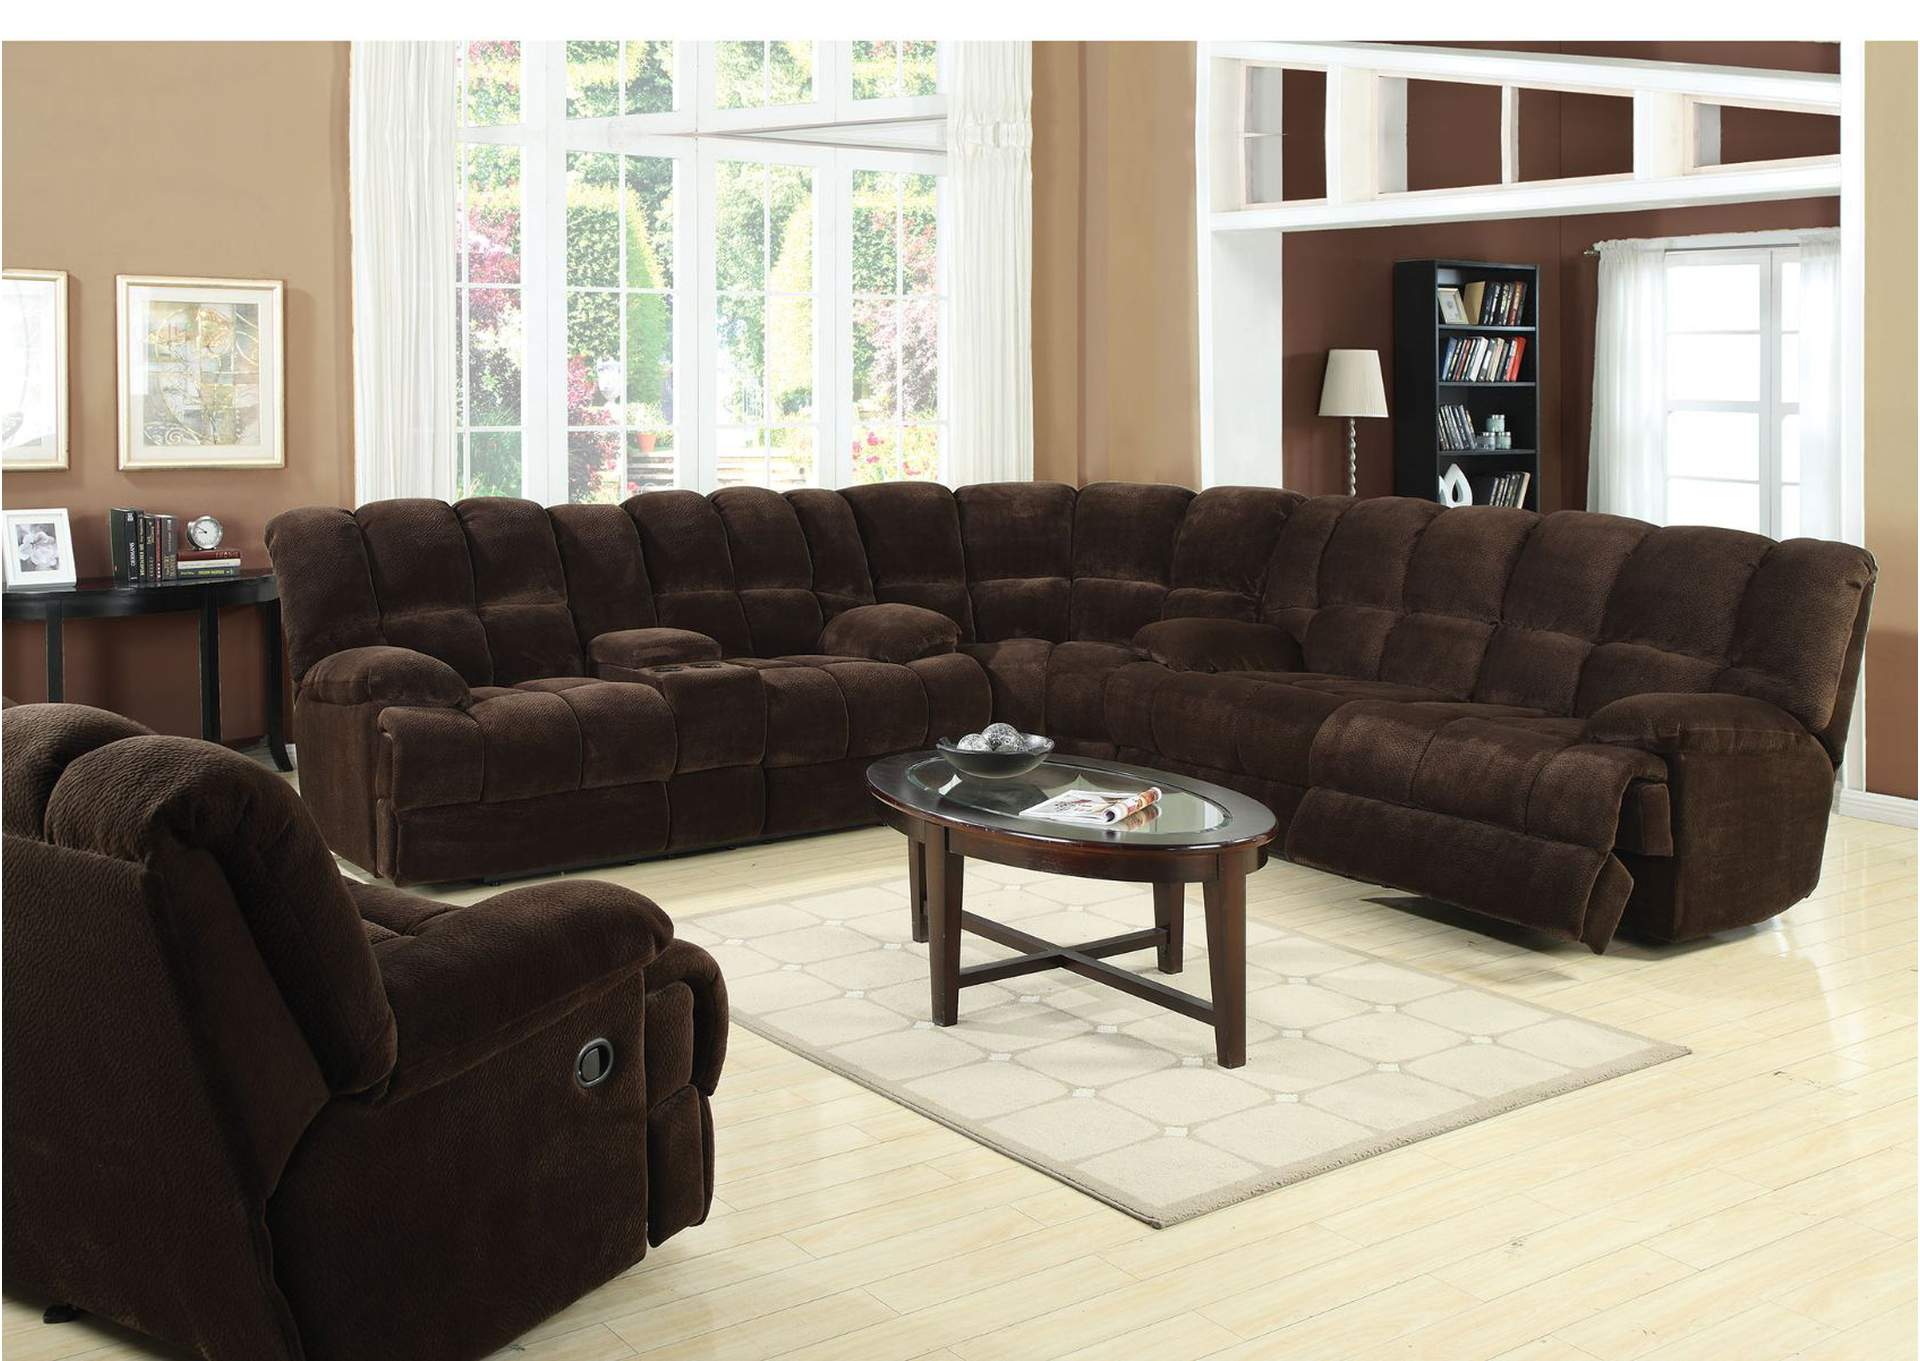 acme sectional sofa chocolate world market nolee review bodega discount furniture ahearn champion motion